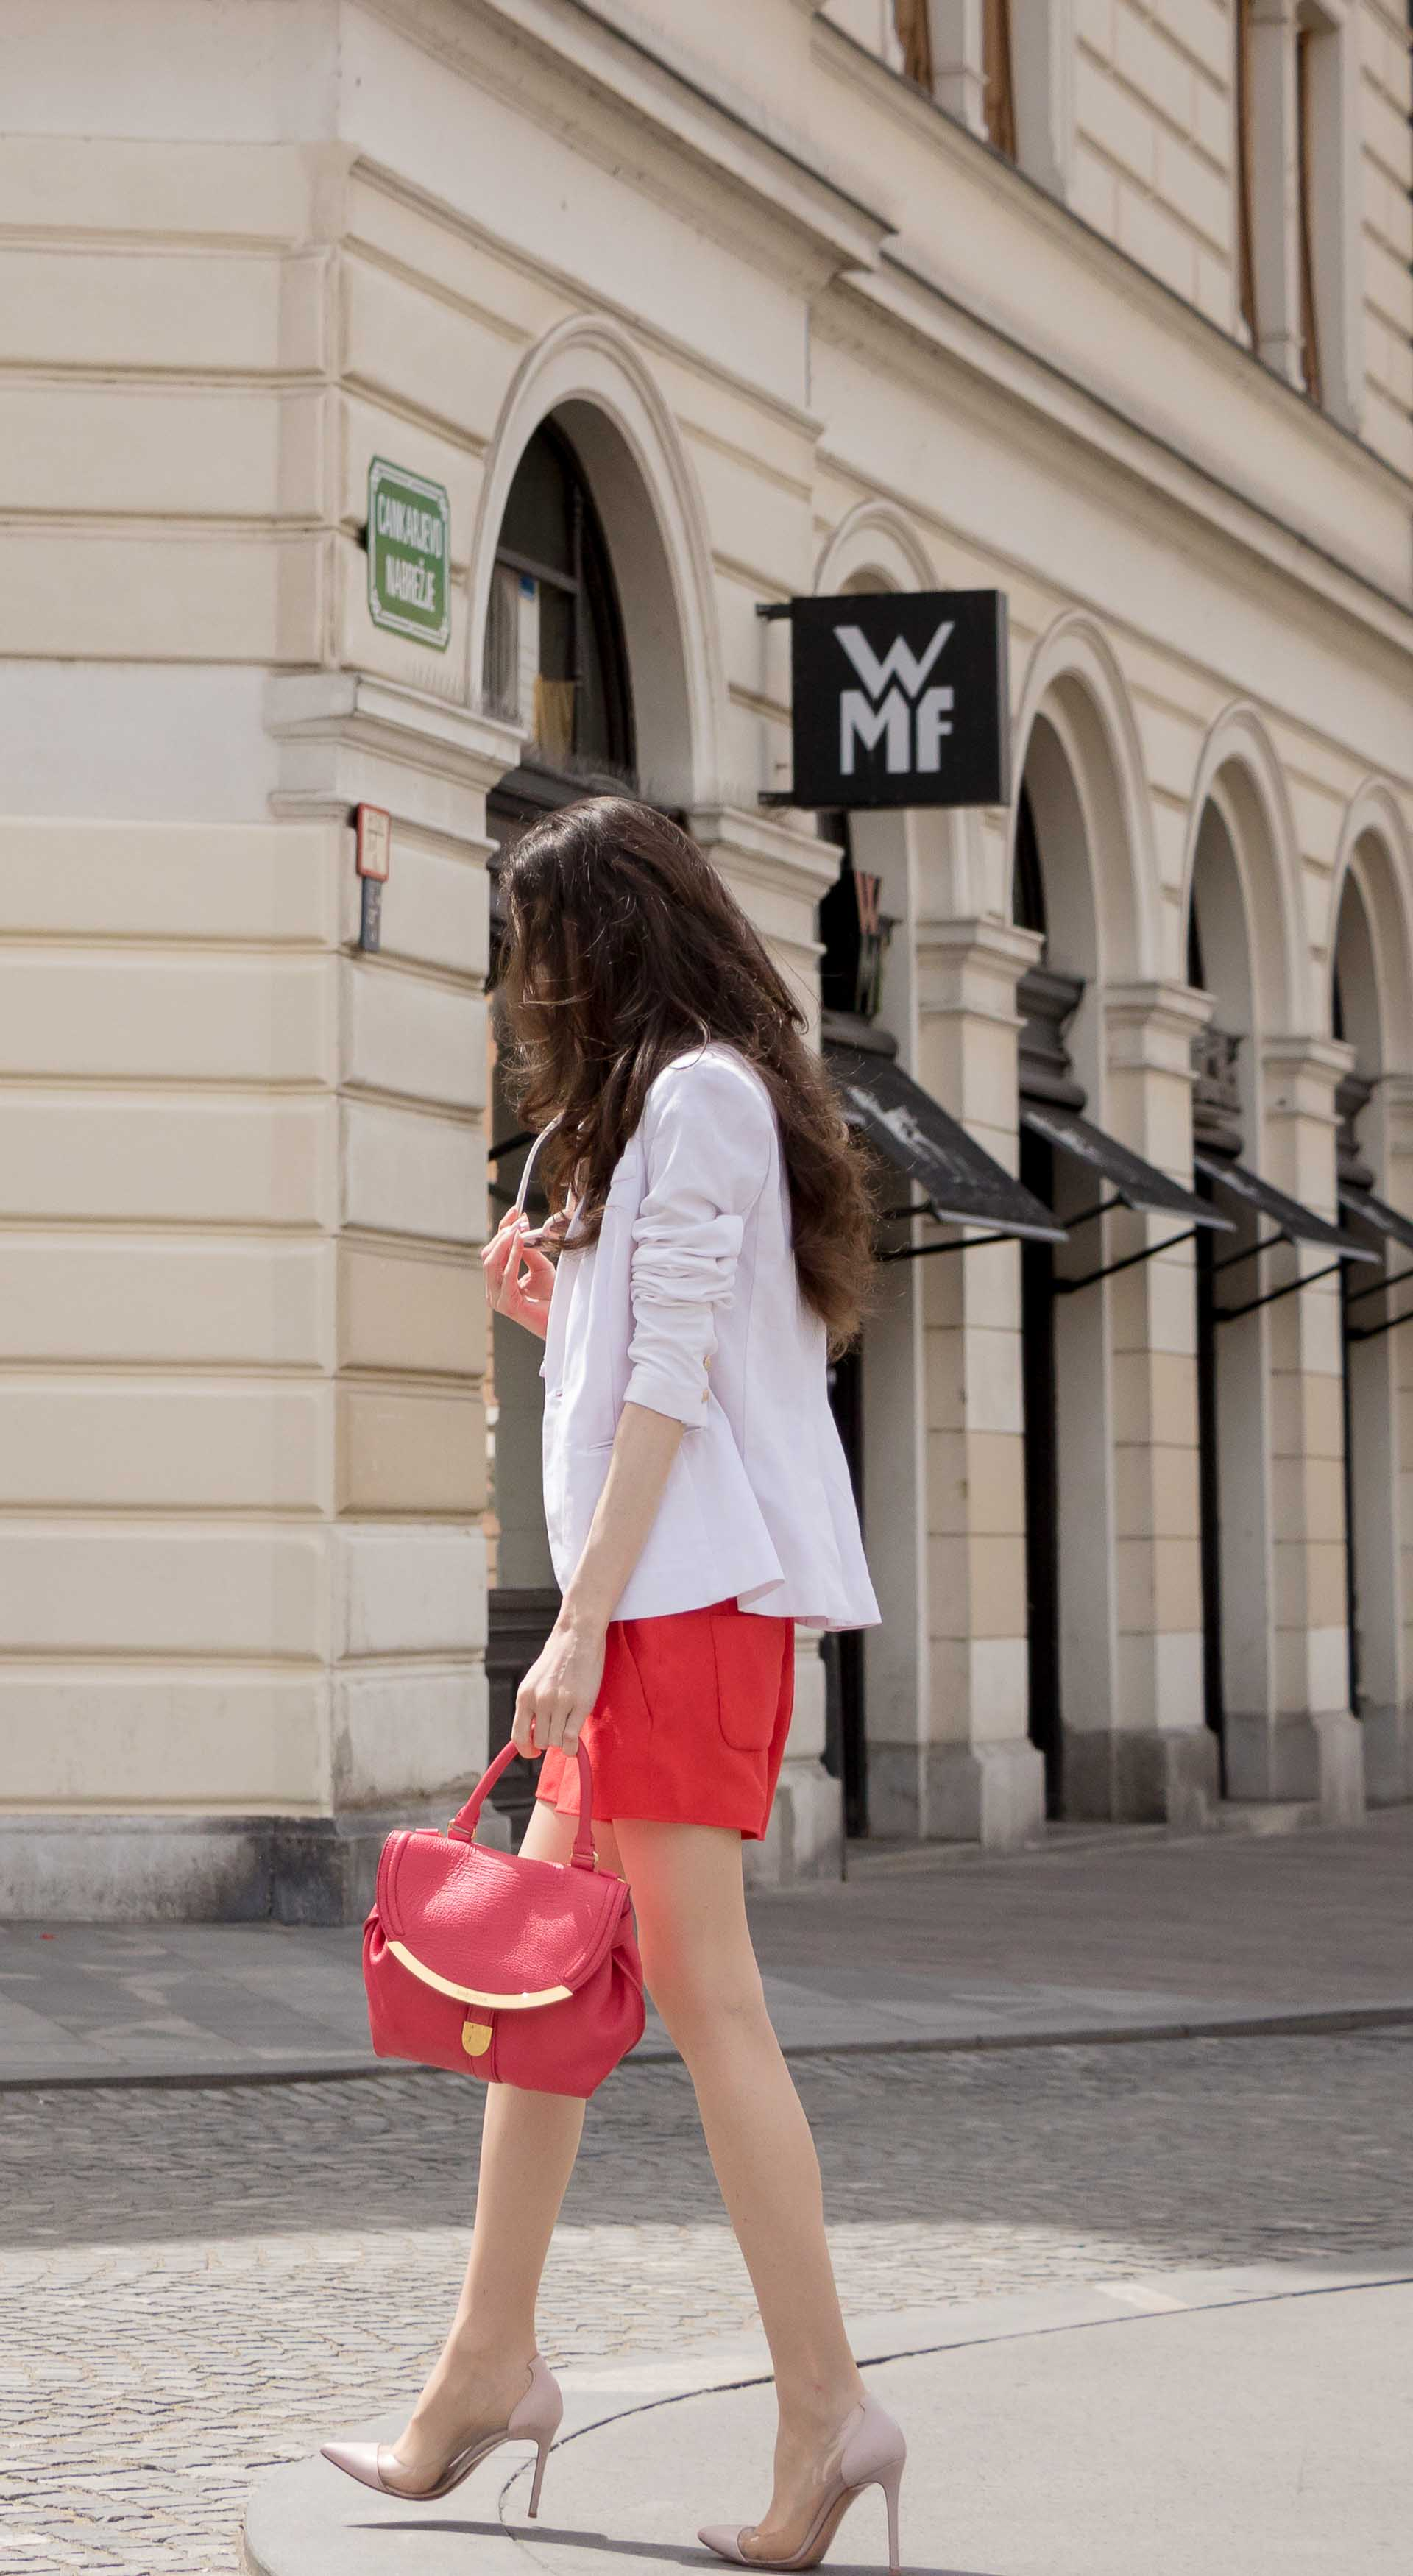 Veronika Lipar Fashion Blogger of Brunette from Wall Street dressed in red playsuit, white blazer, Adam Selman x Le Specs white cat eye Lolita sunglasses, pink top handle See by Chloe bag, Gianvito Rossi plexi pumps on summer day in Ljubljana